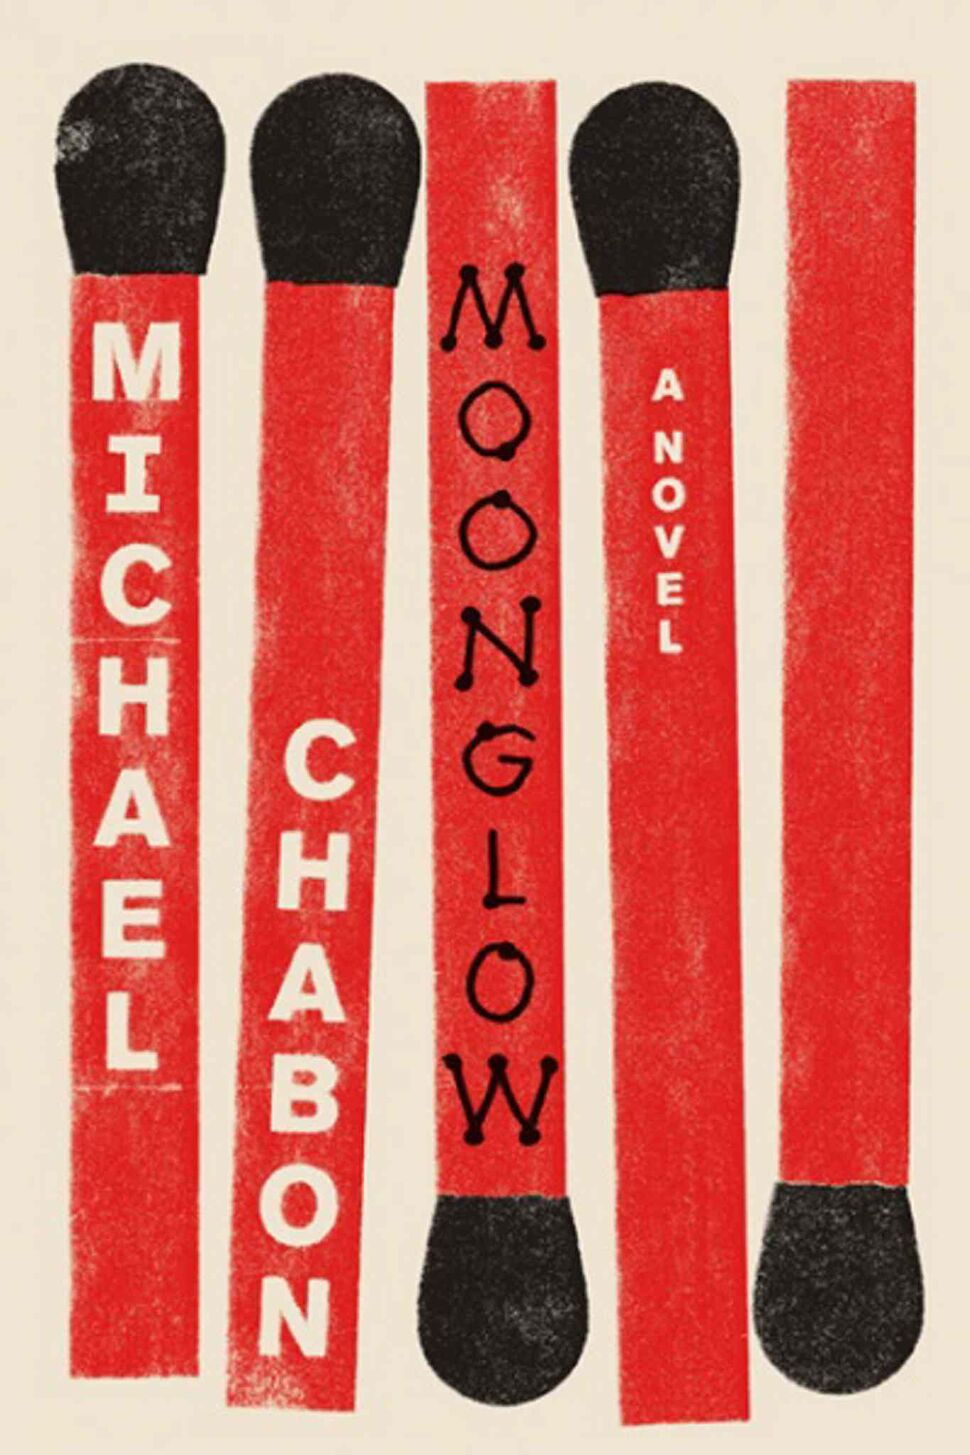 <h3>Moonglow</h3> <br/> By Michael Chabon <br/> <strong>The Pulitzer Prize-winning novelist's latest is a work of fictional non-fiction (or vice versa) in which Chabon recalls the purported last words of his dying grandfather and tells us his tale. It's impossible to untangle the truth from the author's fabulous fabulation, but that's half the fun of this exhilarating, touching love story/thriller/memoir.</strong> <br/> — Jill Wilson